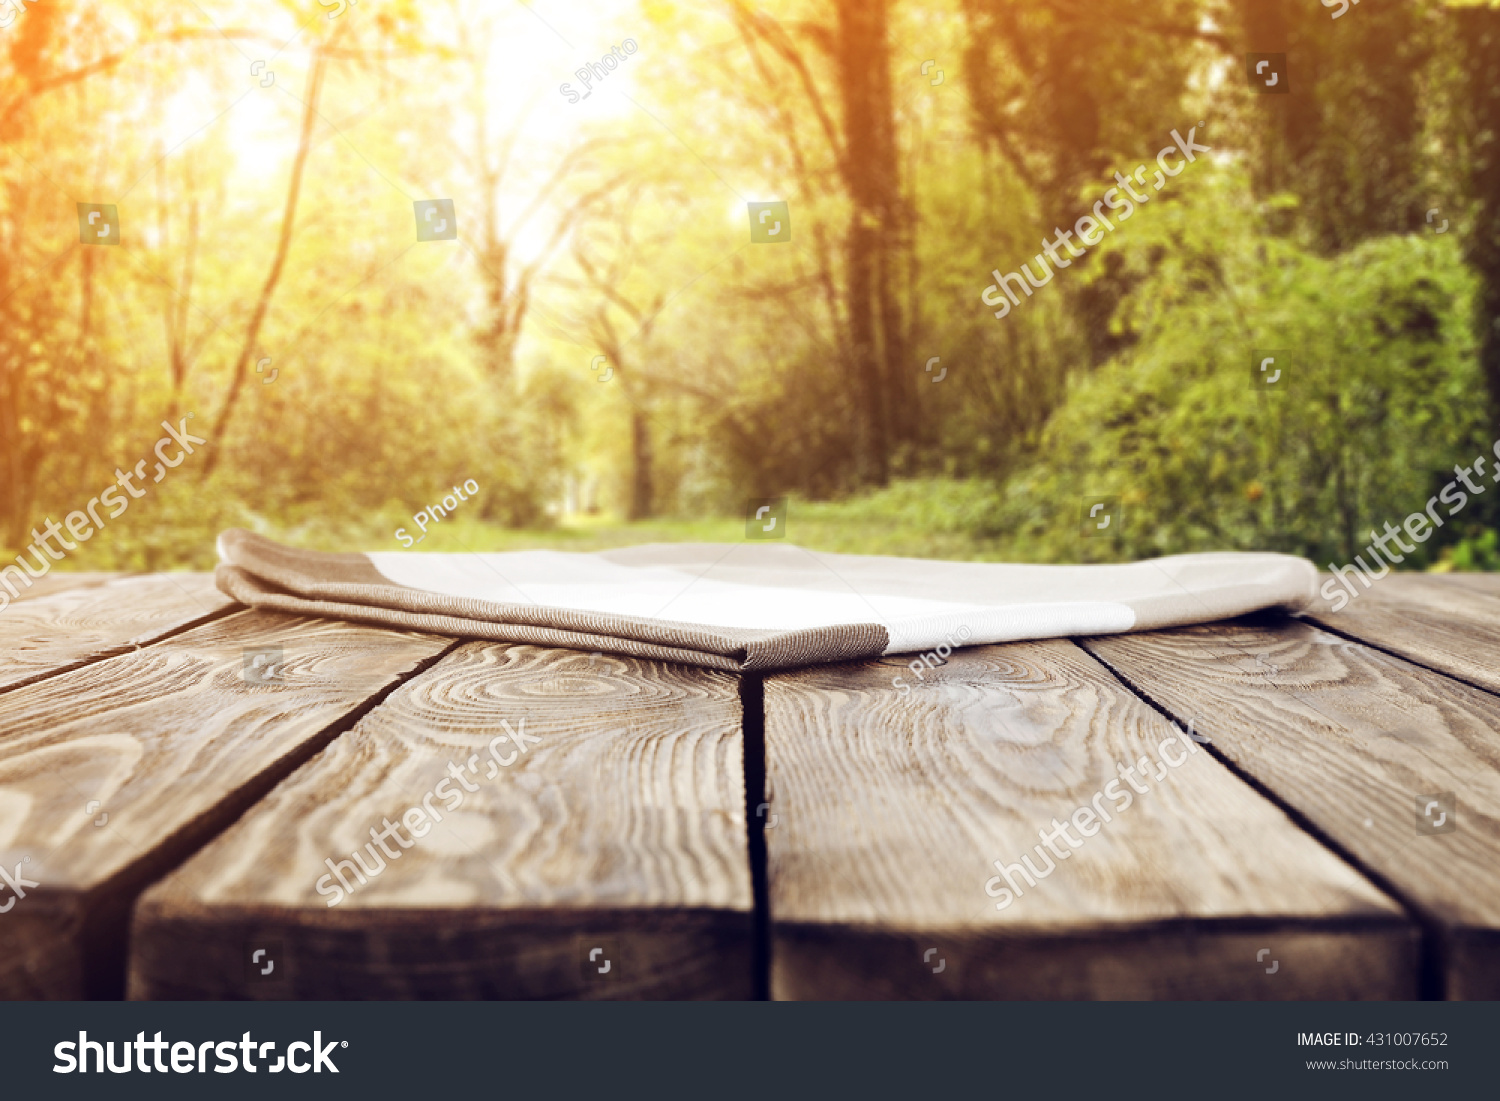 Picnic table background - Summer Garden Background With Few Trees And Green Grass And Picnic Table